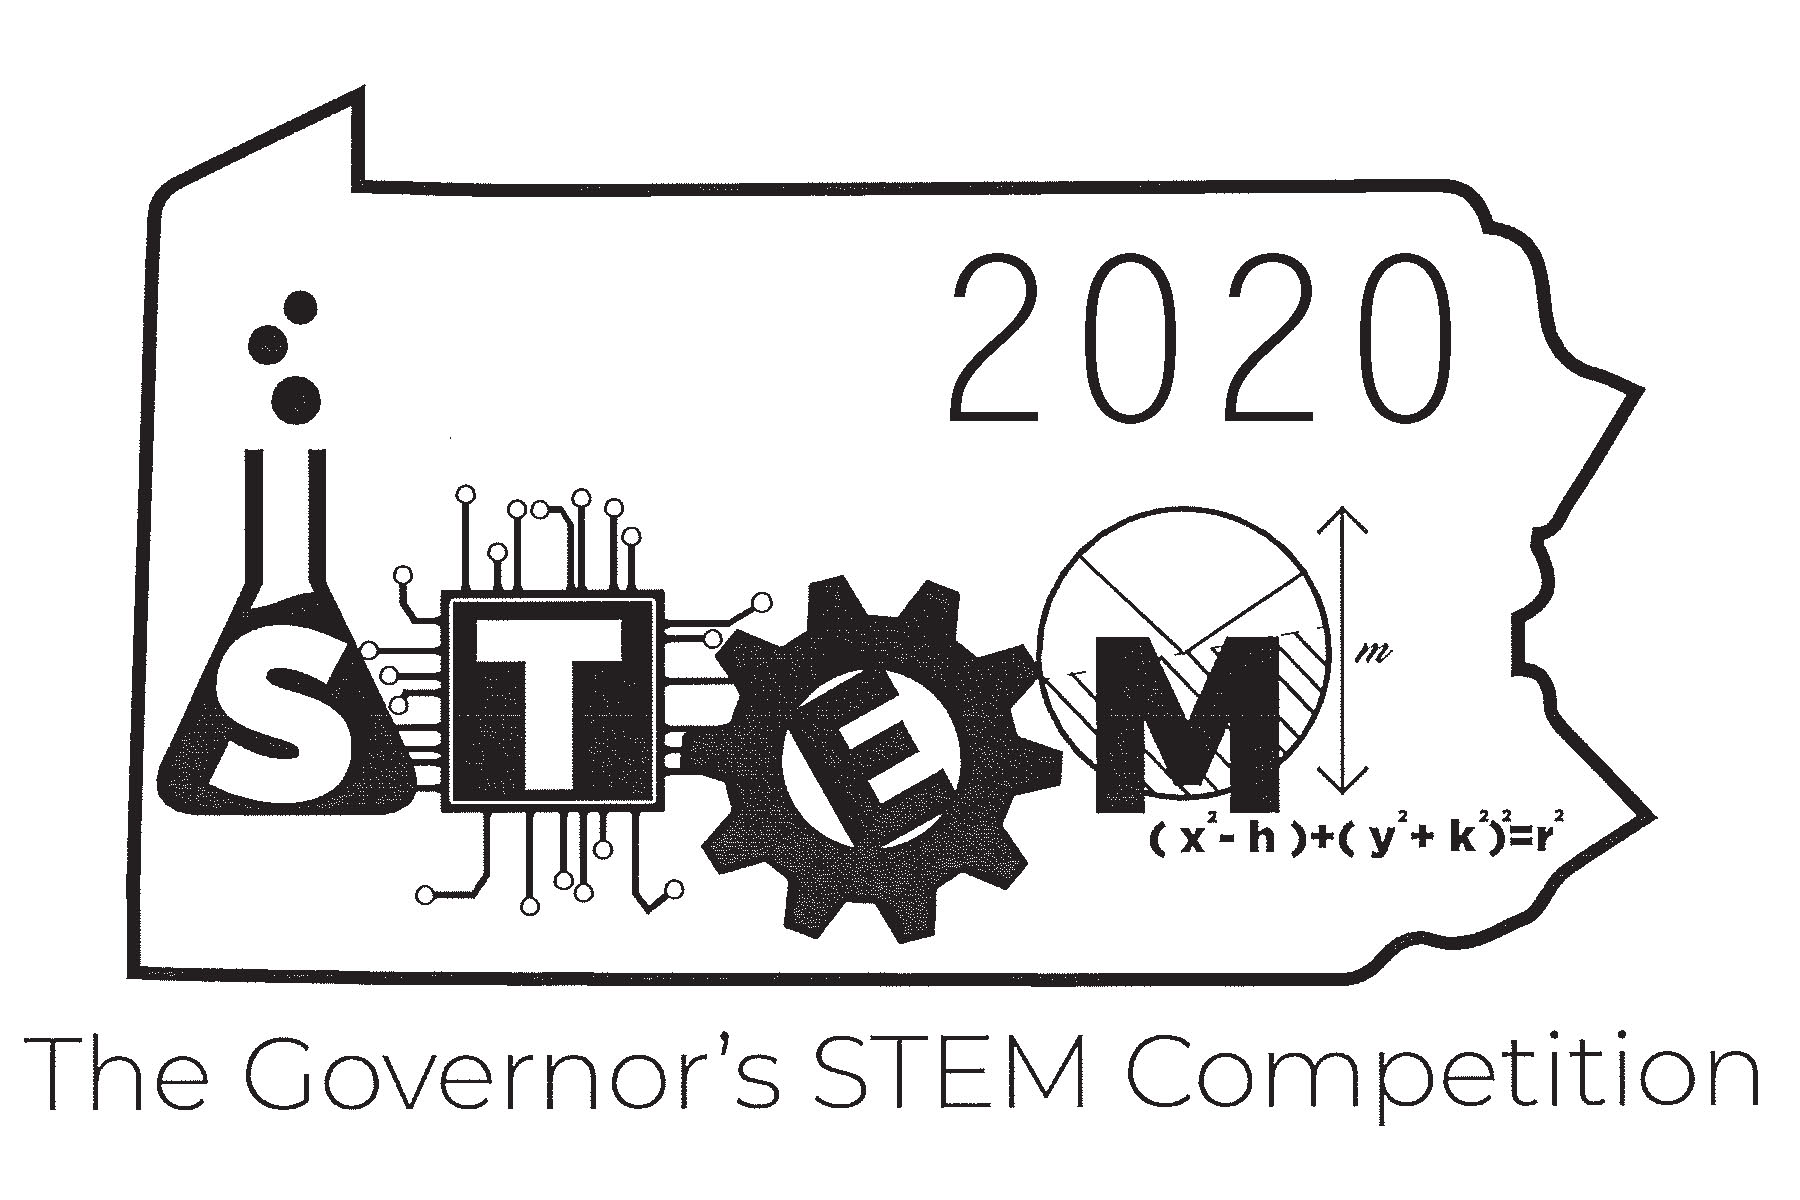 PA Governor's STEM Competition 2020